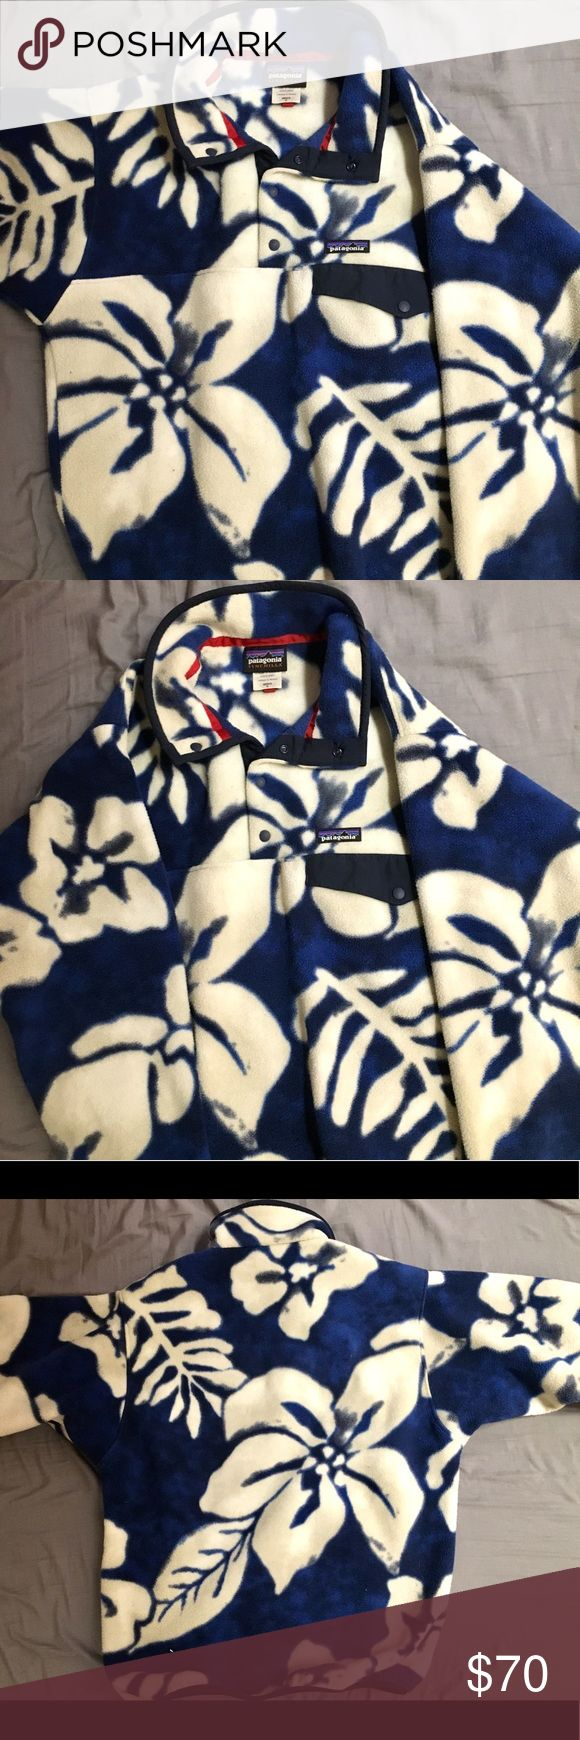 Patagonia fleece pullover jacket Barely used floral Patagonia fleece pullover!                    Size: Men's small Patagonia Jackets & Coats